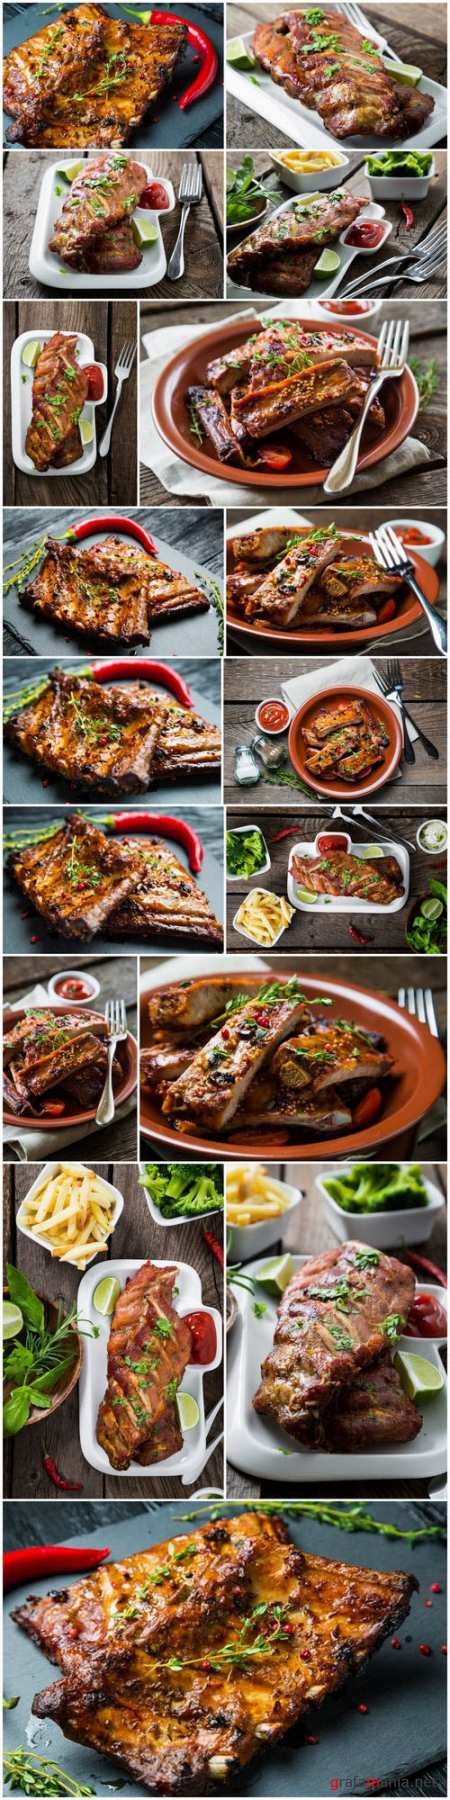 Appetizing grilled ribs - 17xUHQ JPEG Photo Stock